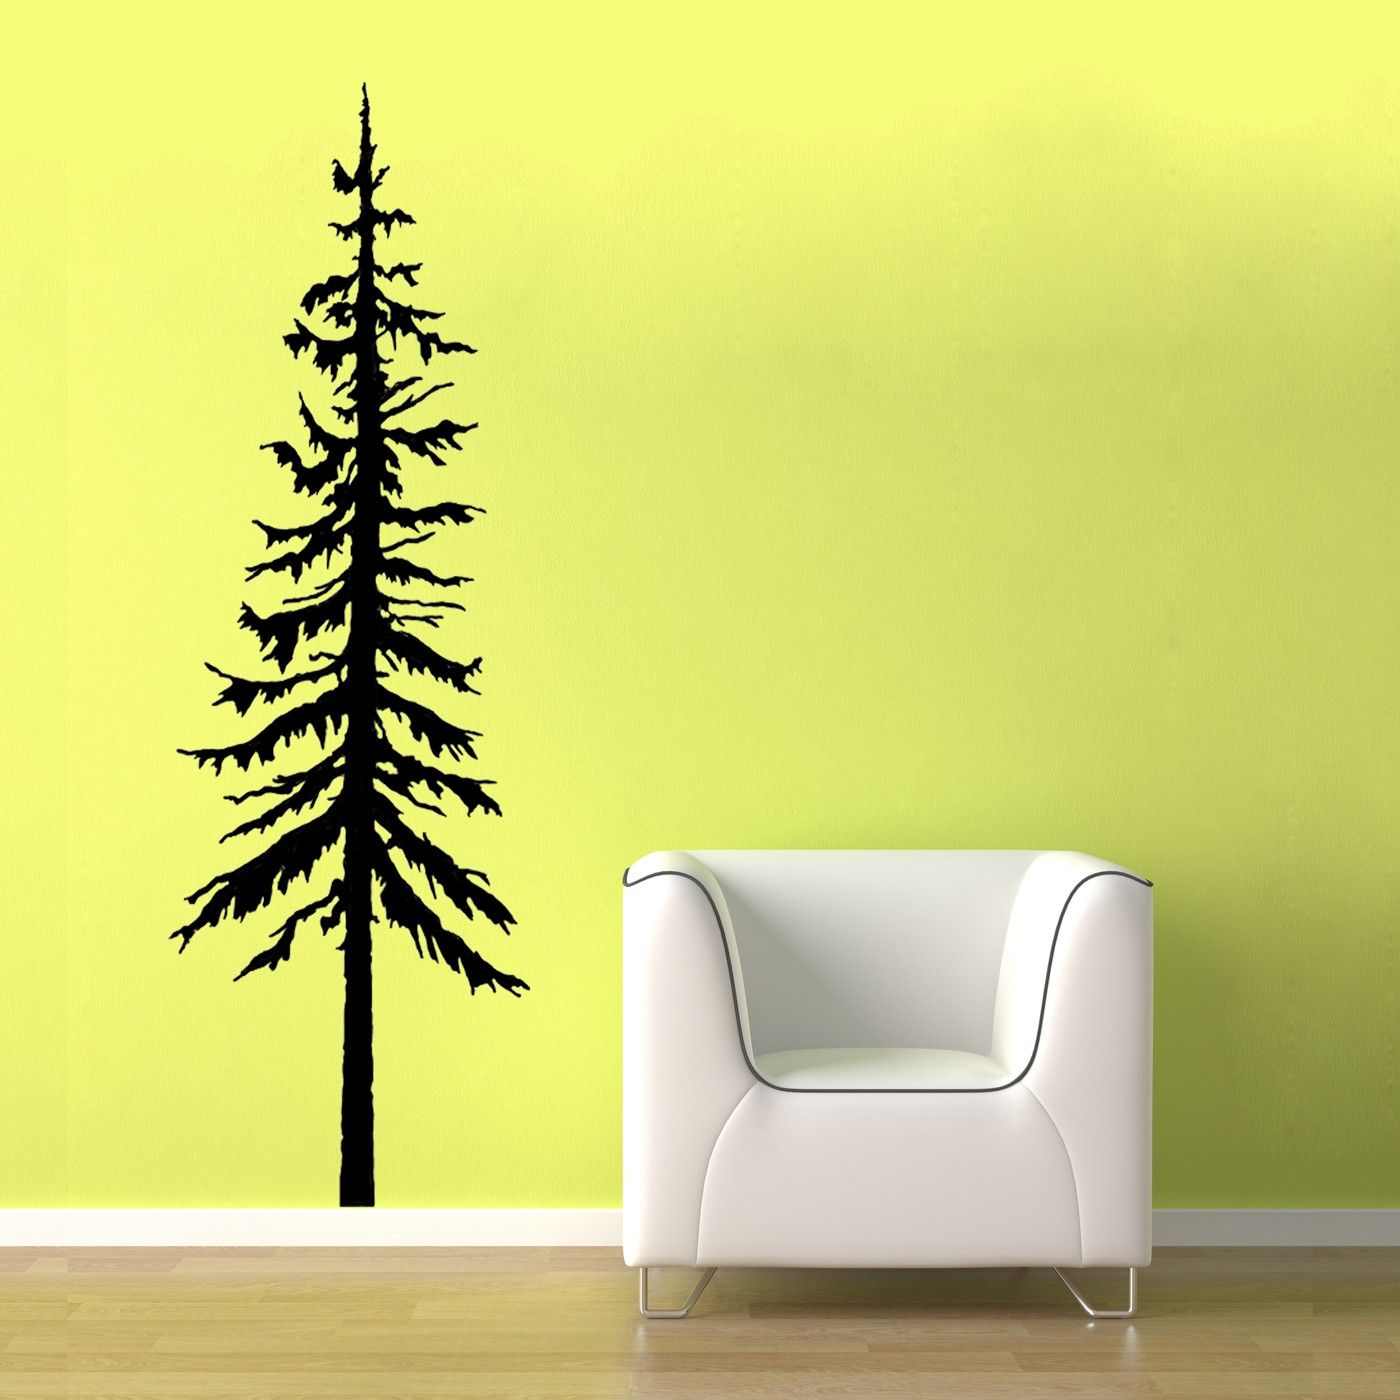 Pine Tree Decal, vinyl wall graphic, Pine Tree Decal, Pine Trees ...